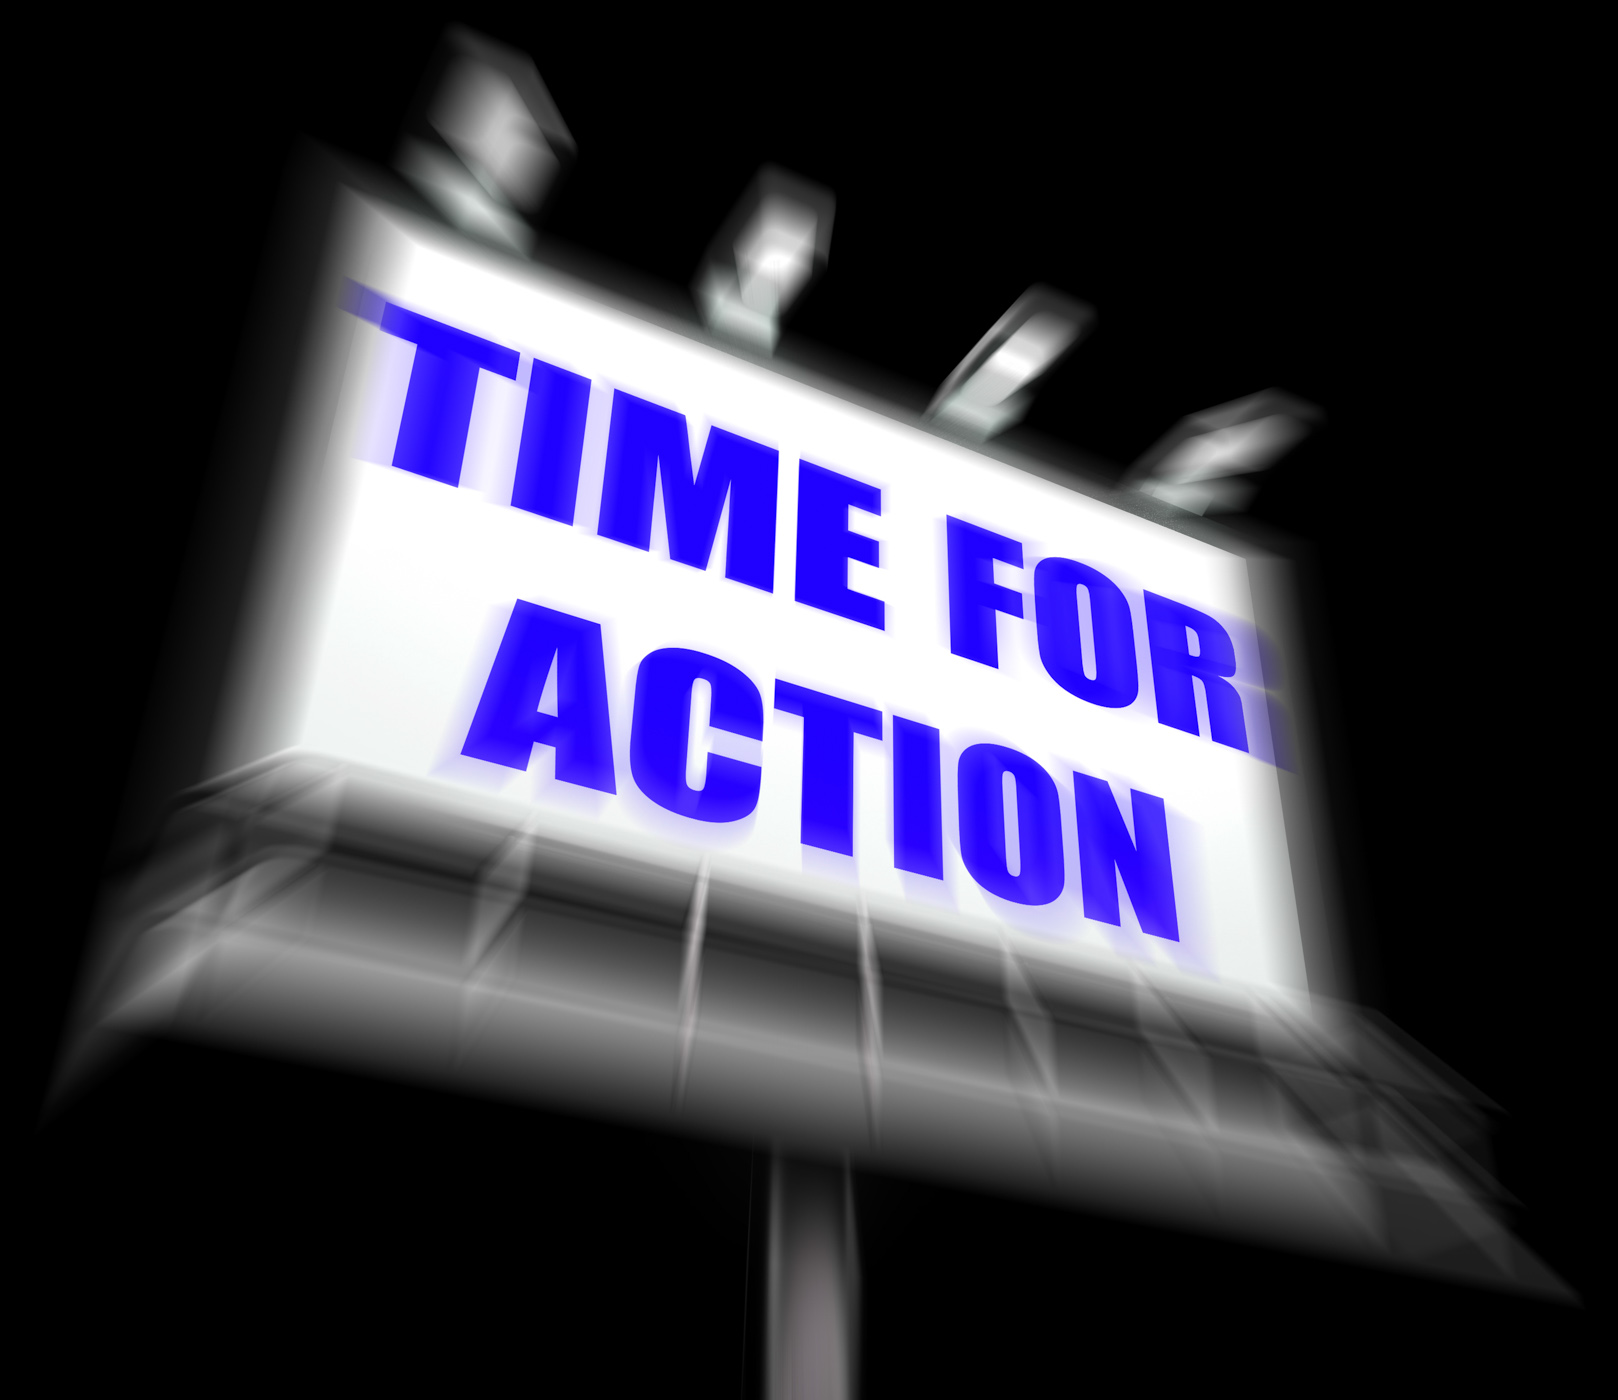 Time for action sign displays urgency rush to act now photo